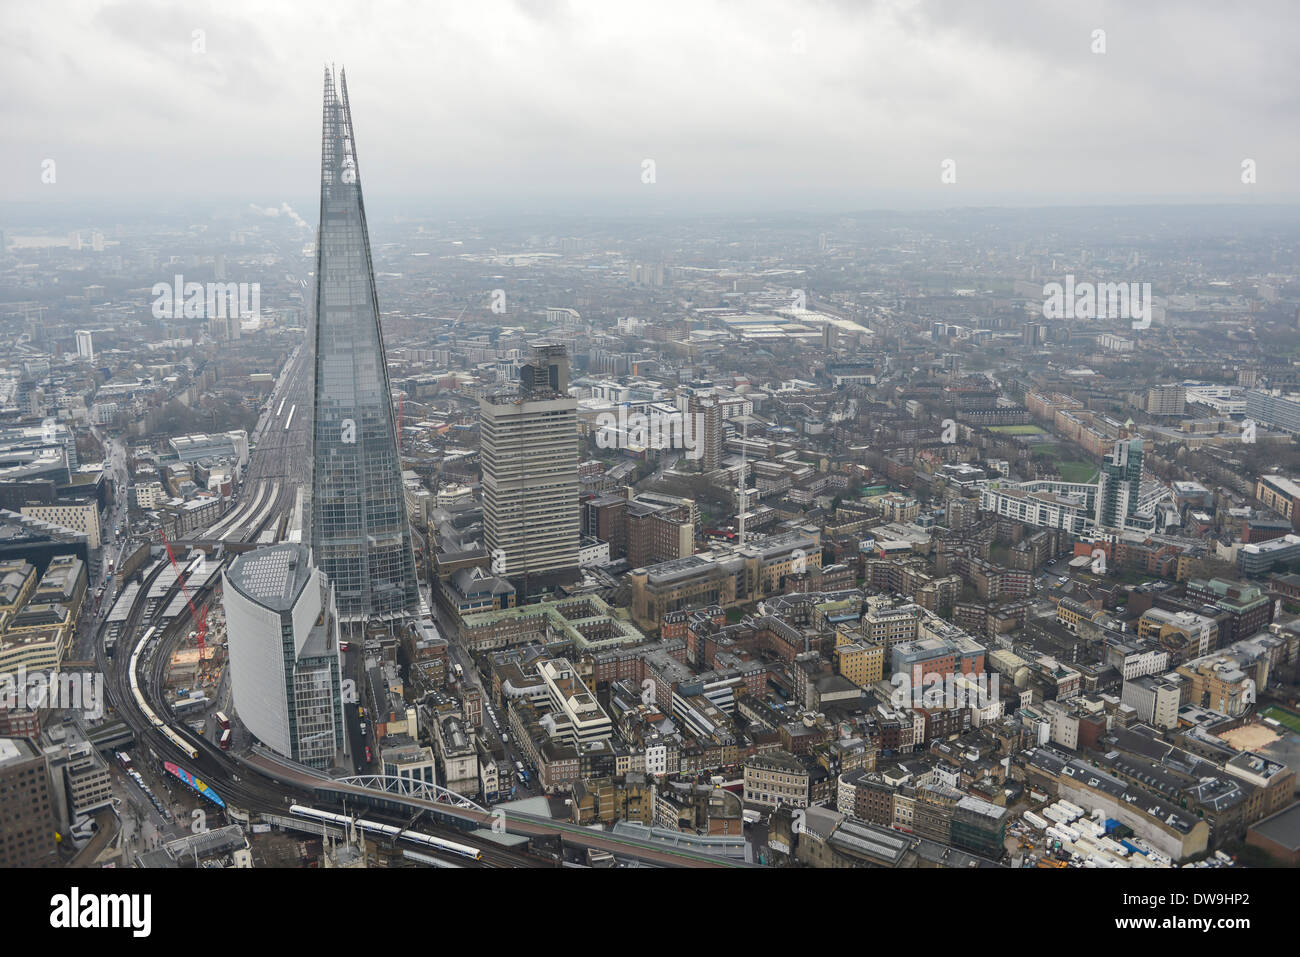 Aerial Photograph showing The Shard and Surroundings in Southwark, London, United Kingdom Stock Photo